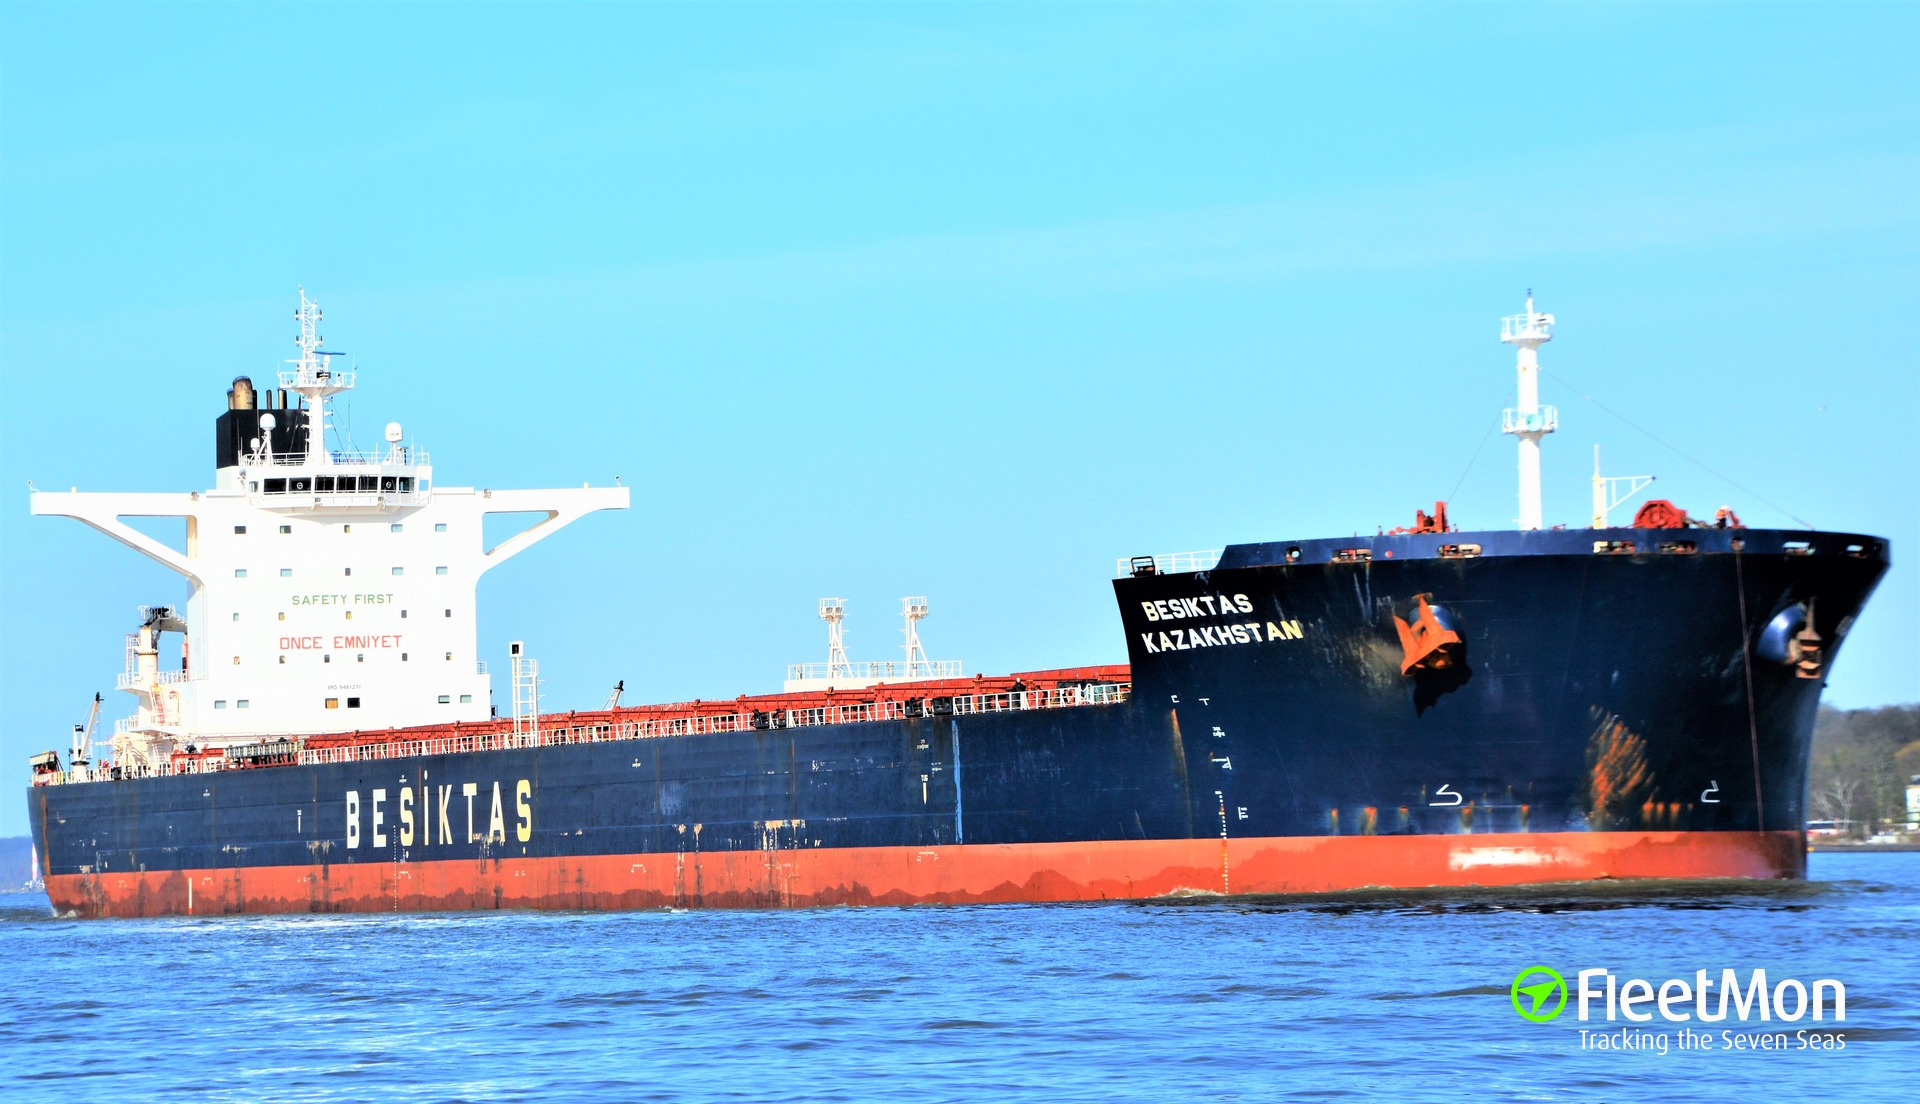 Bulk carrier BESIKTAS KAZAKHSTAN and crew cleared in cocaine bust